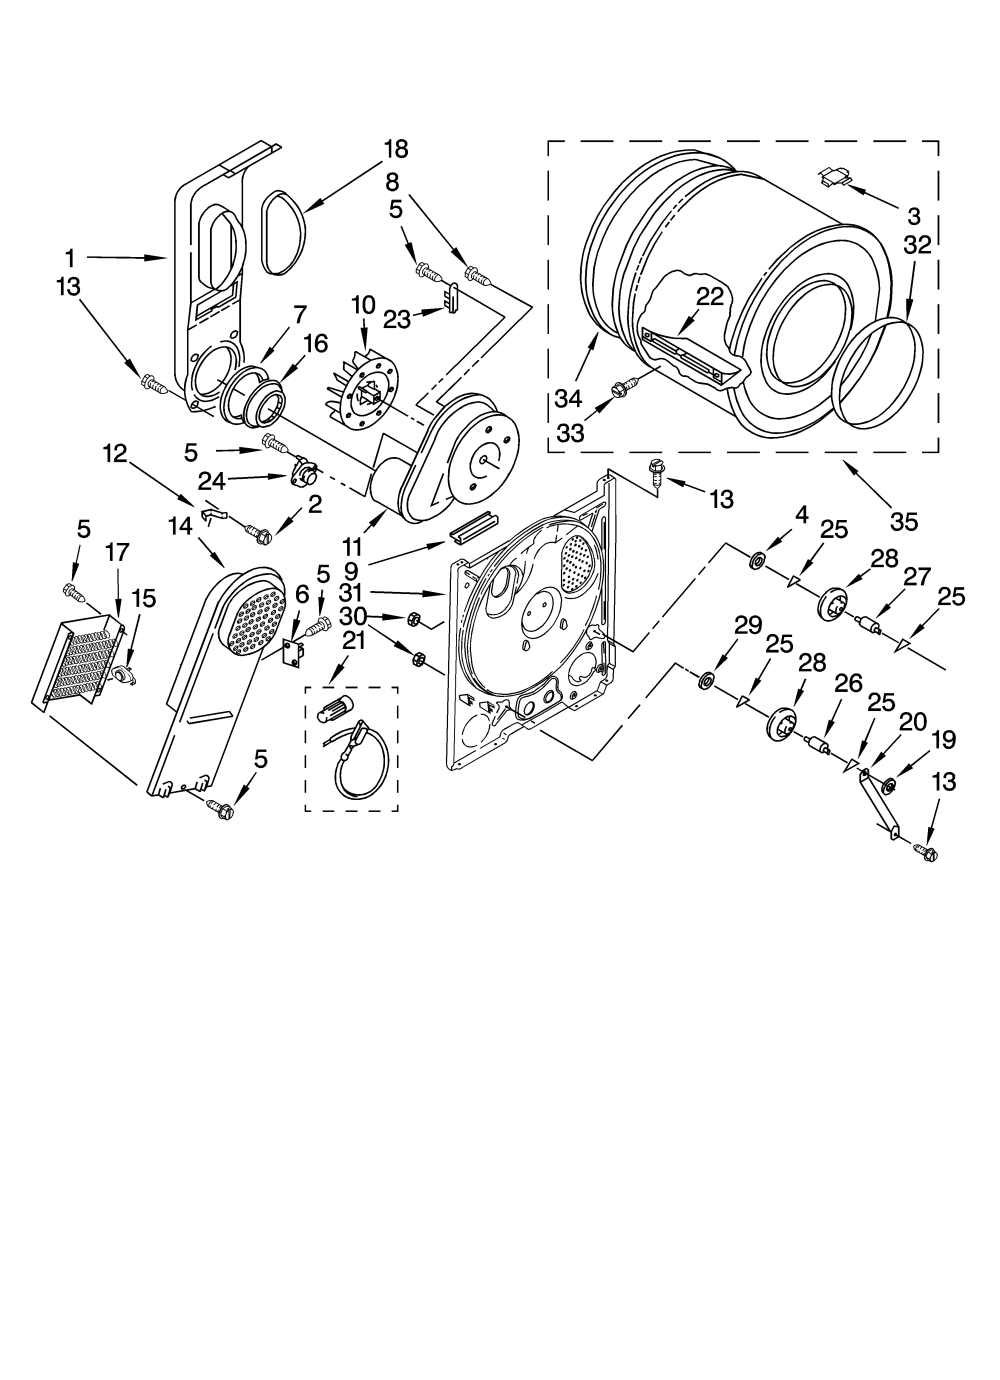 medium resolution of looking for amana model ned5100tq1 dryer repair replacement parts amana ned5100tq1 wiring diagram model